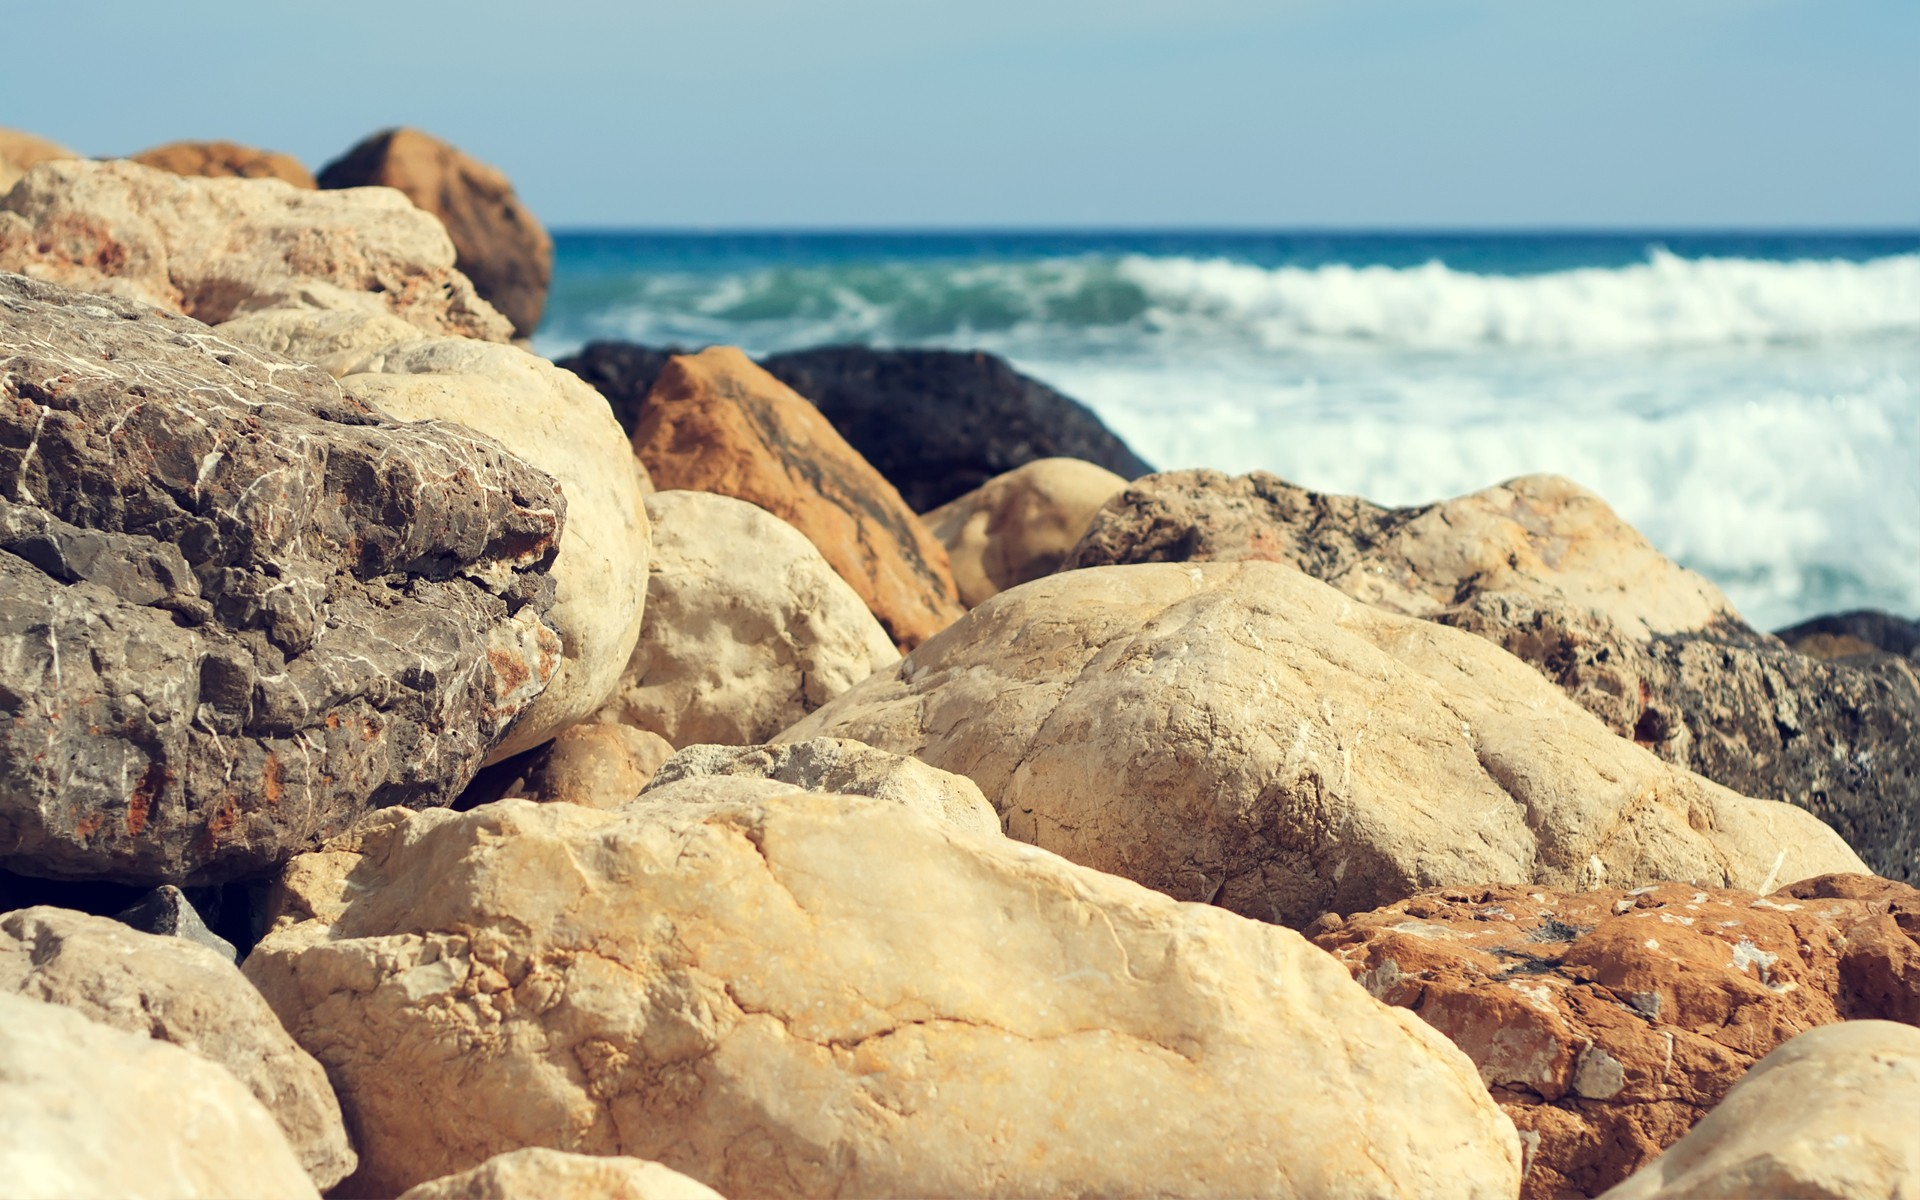 Sea coast with large boulders, photo wallpapers of high quality